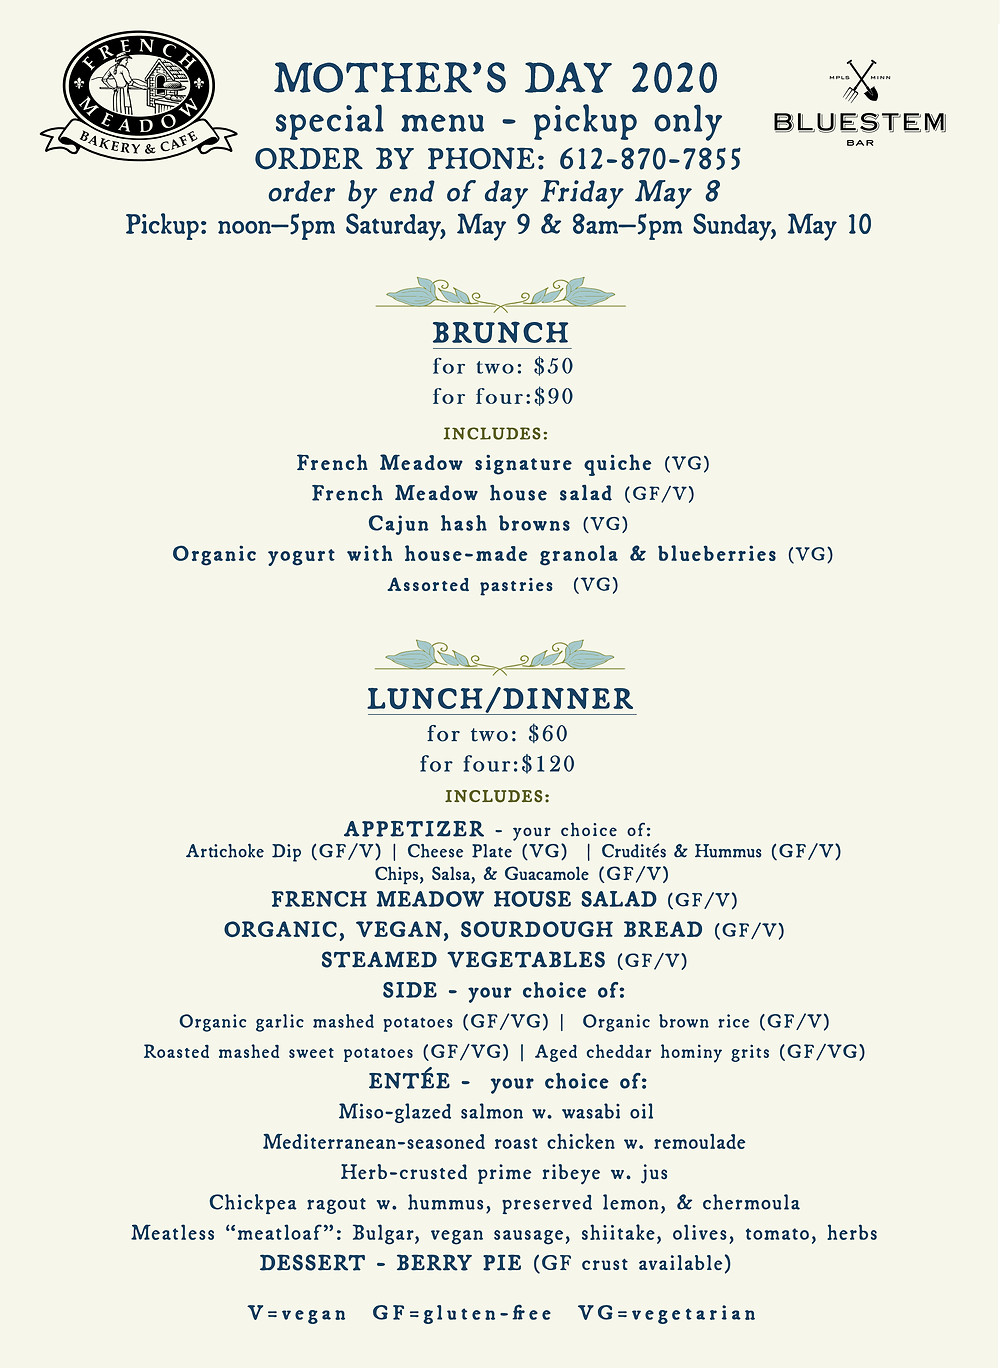 Mother's Day at French Meadow 2020 menu